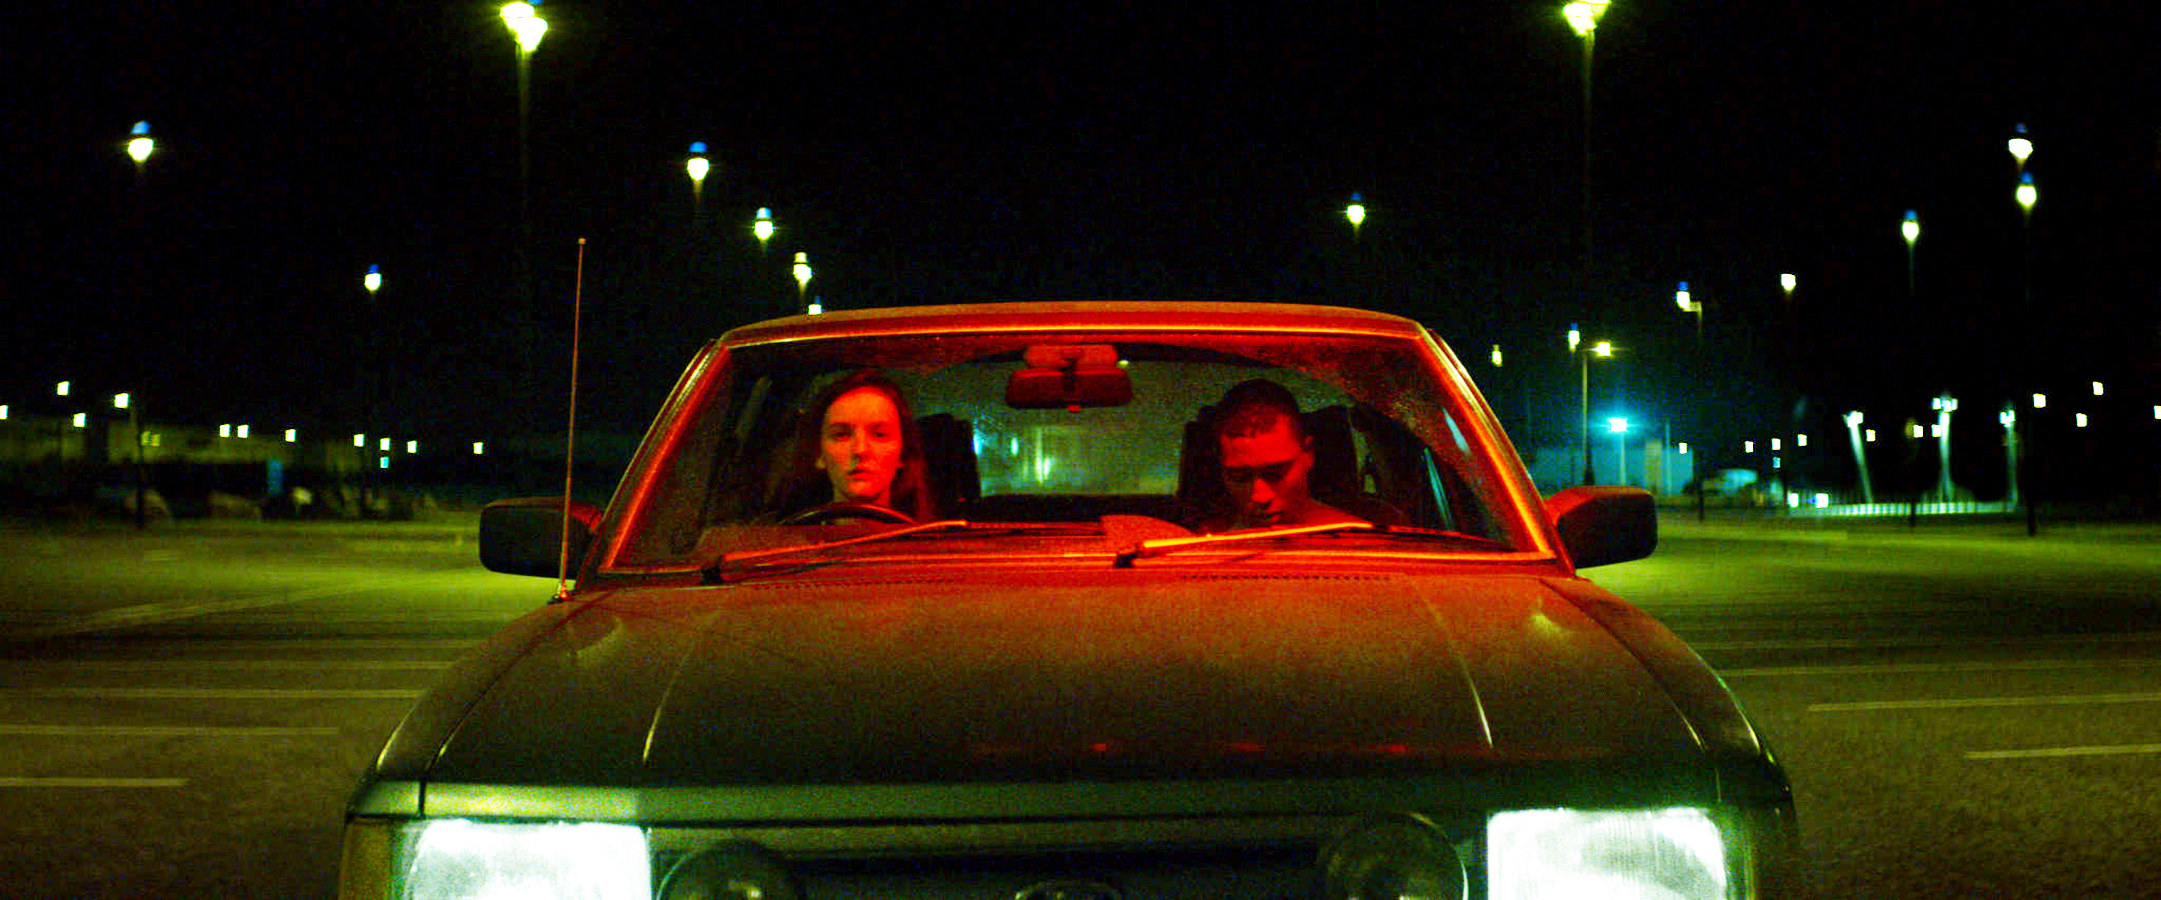 Skelly in Kissing Candice in a car with man in a parking lot